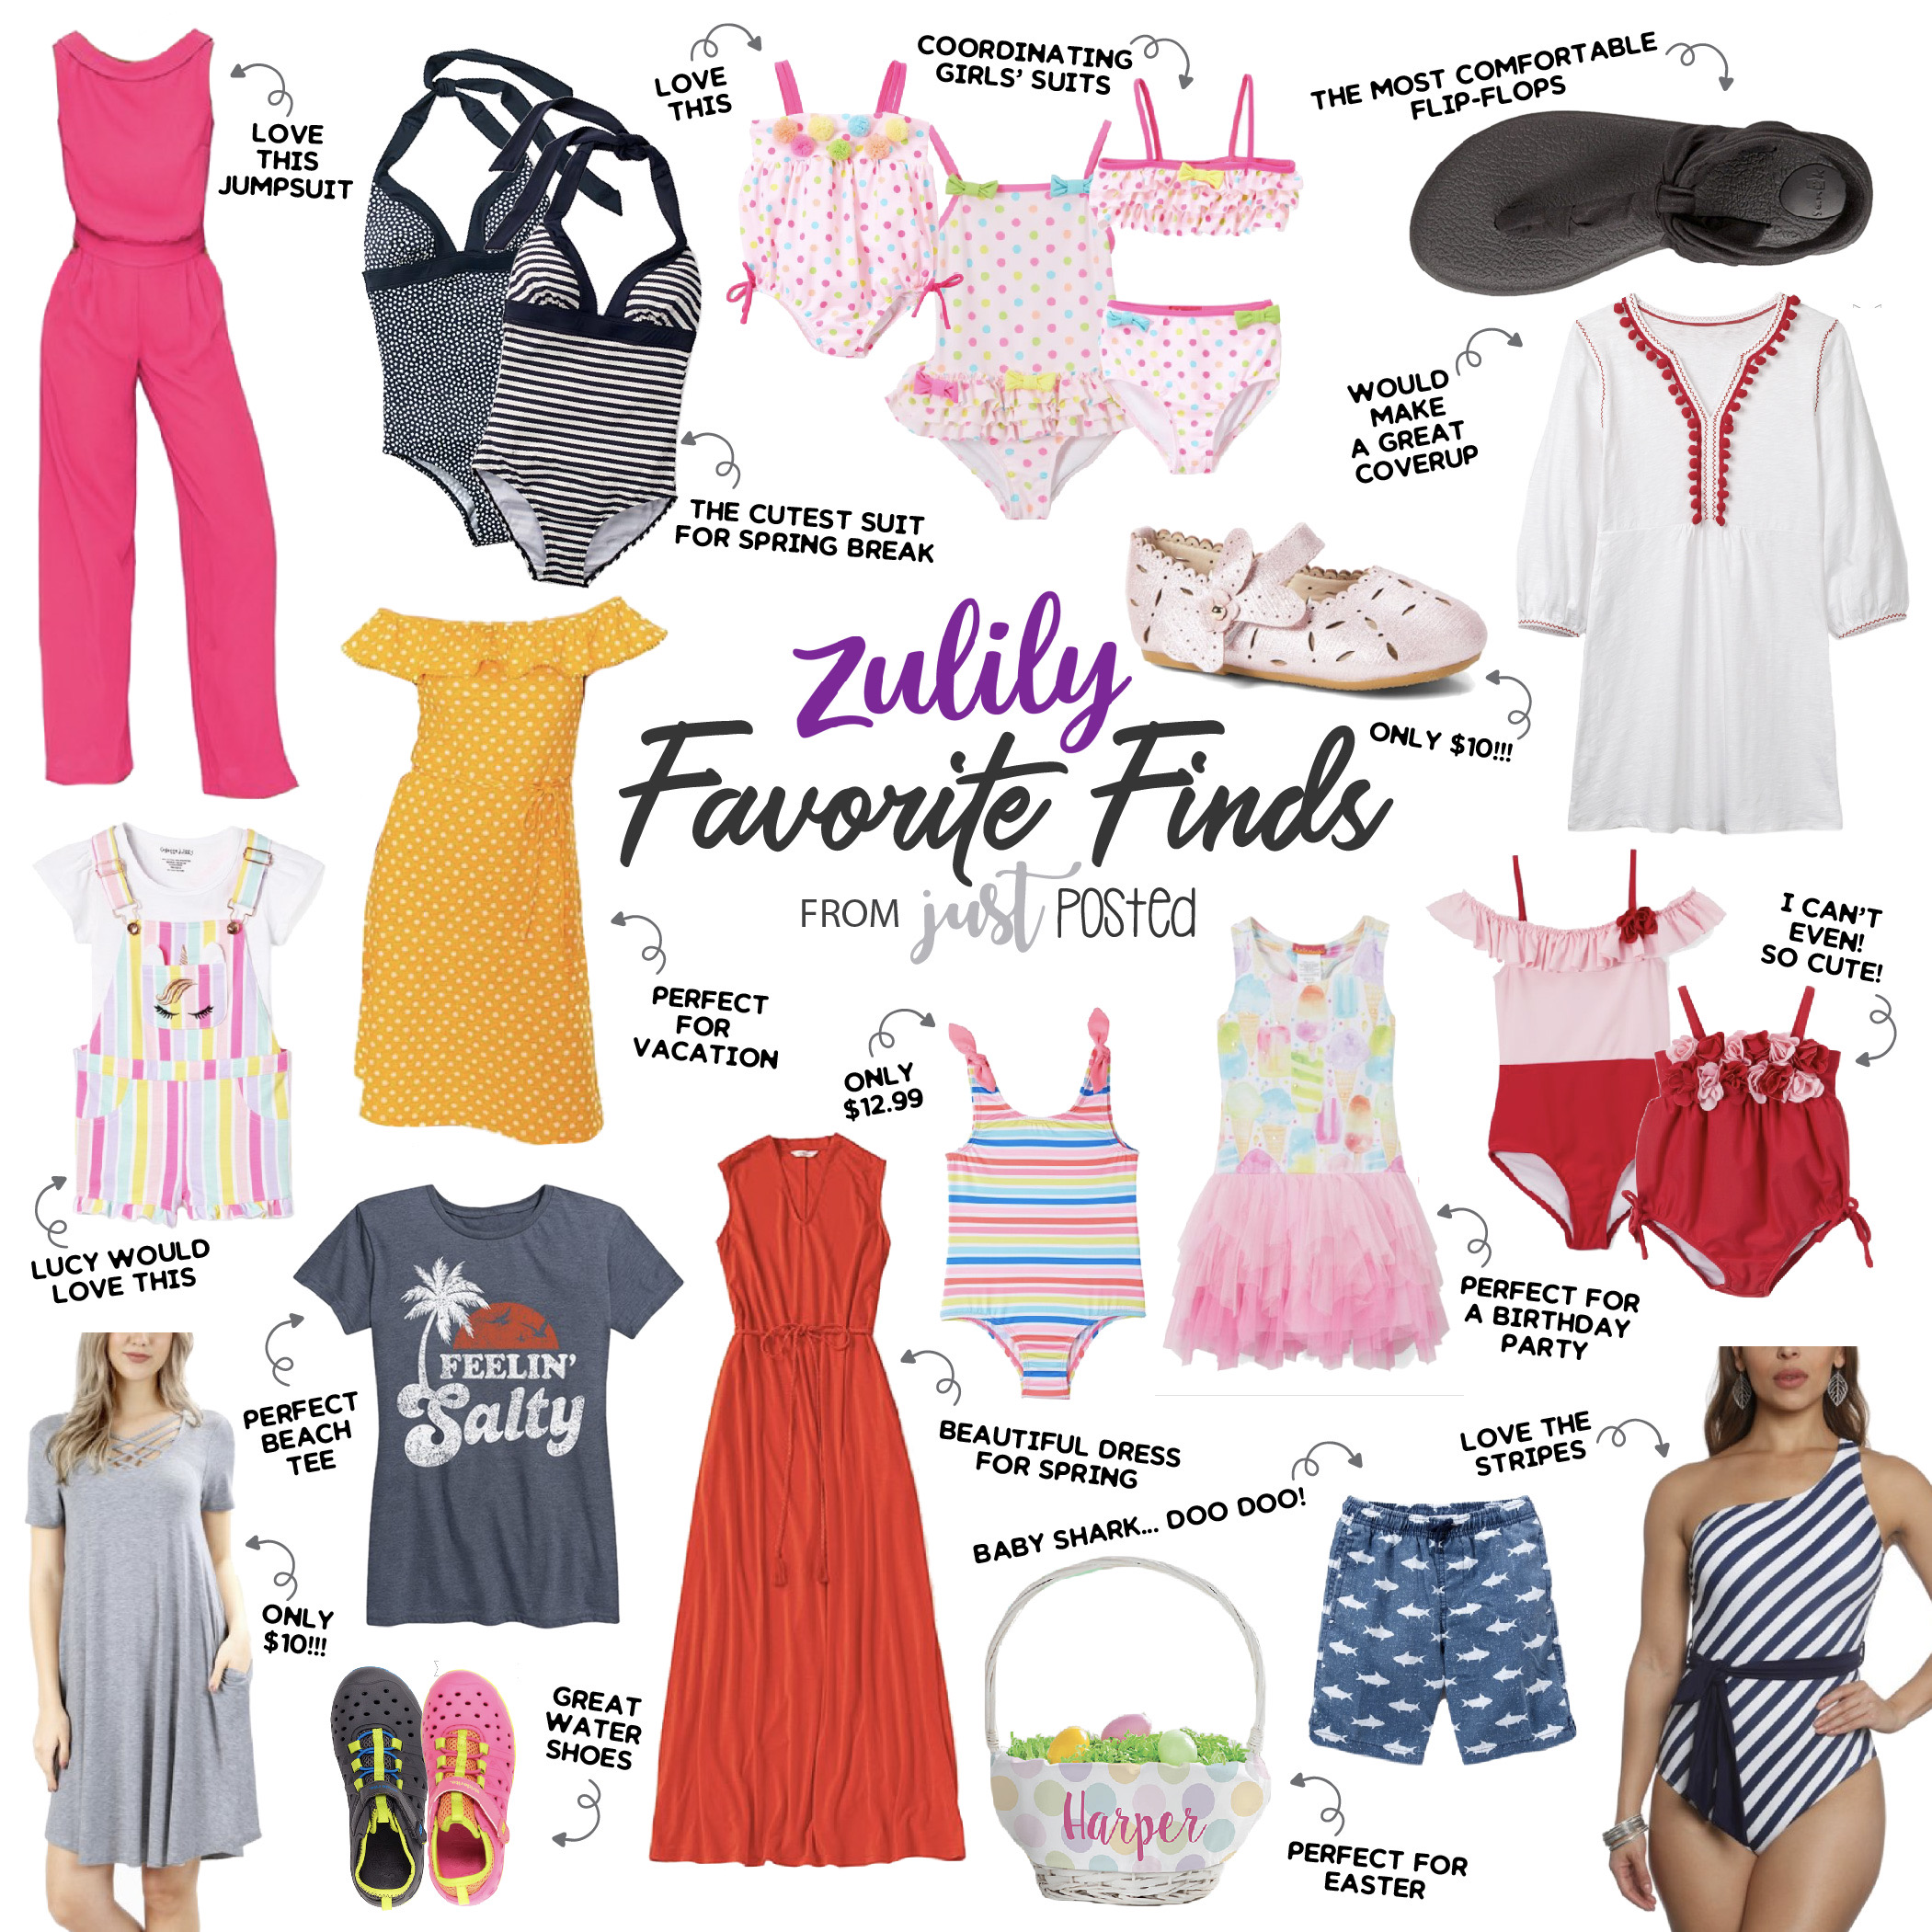 ZULILY: offers deals on brands for moms, babies, men and kids. Save up to 70% on our daily flash sales, featuring home décor, clothing, toys and more!